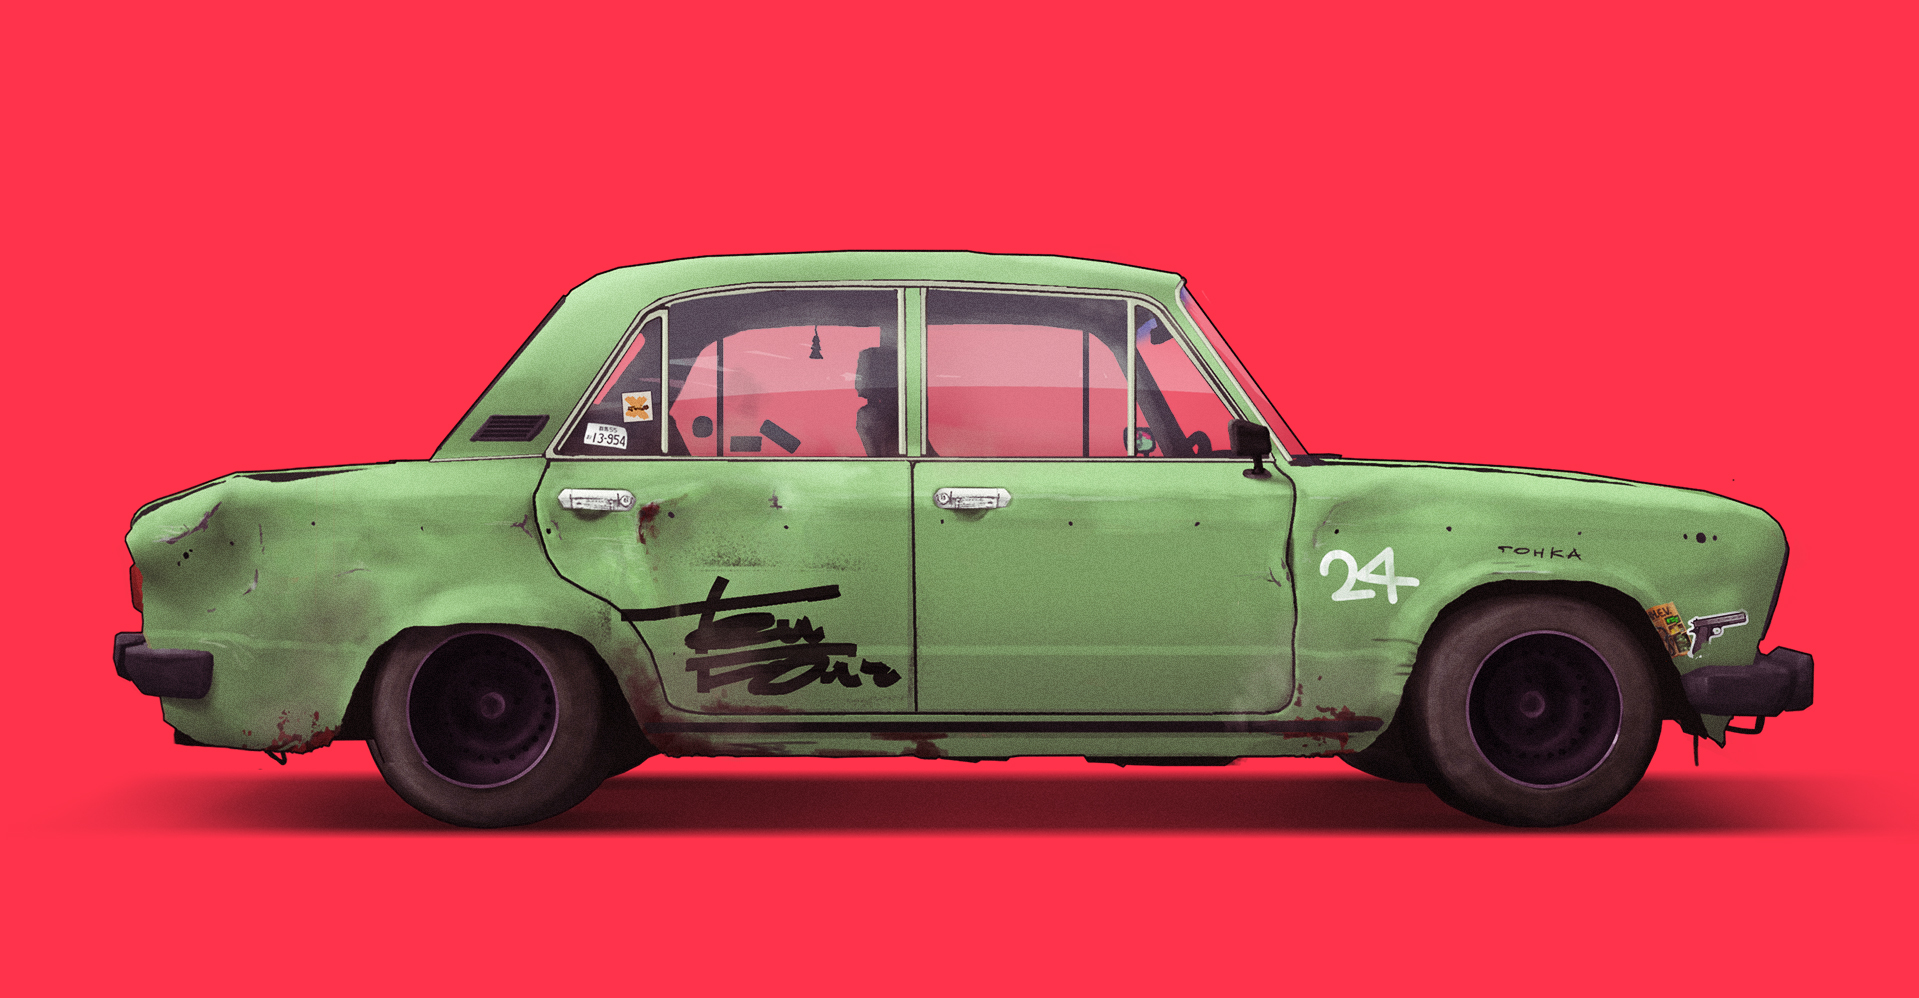 Russian Cars Illustrated by Vlad Tretiak